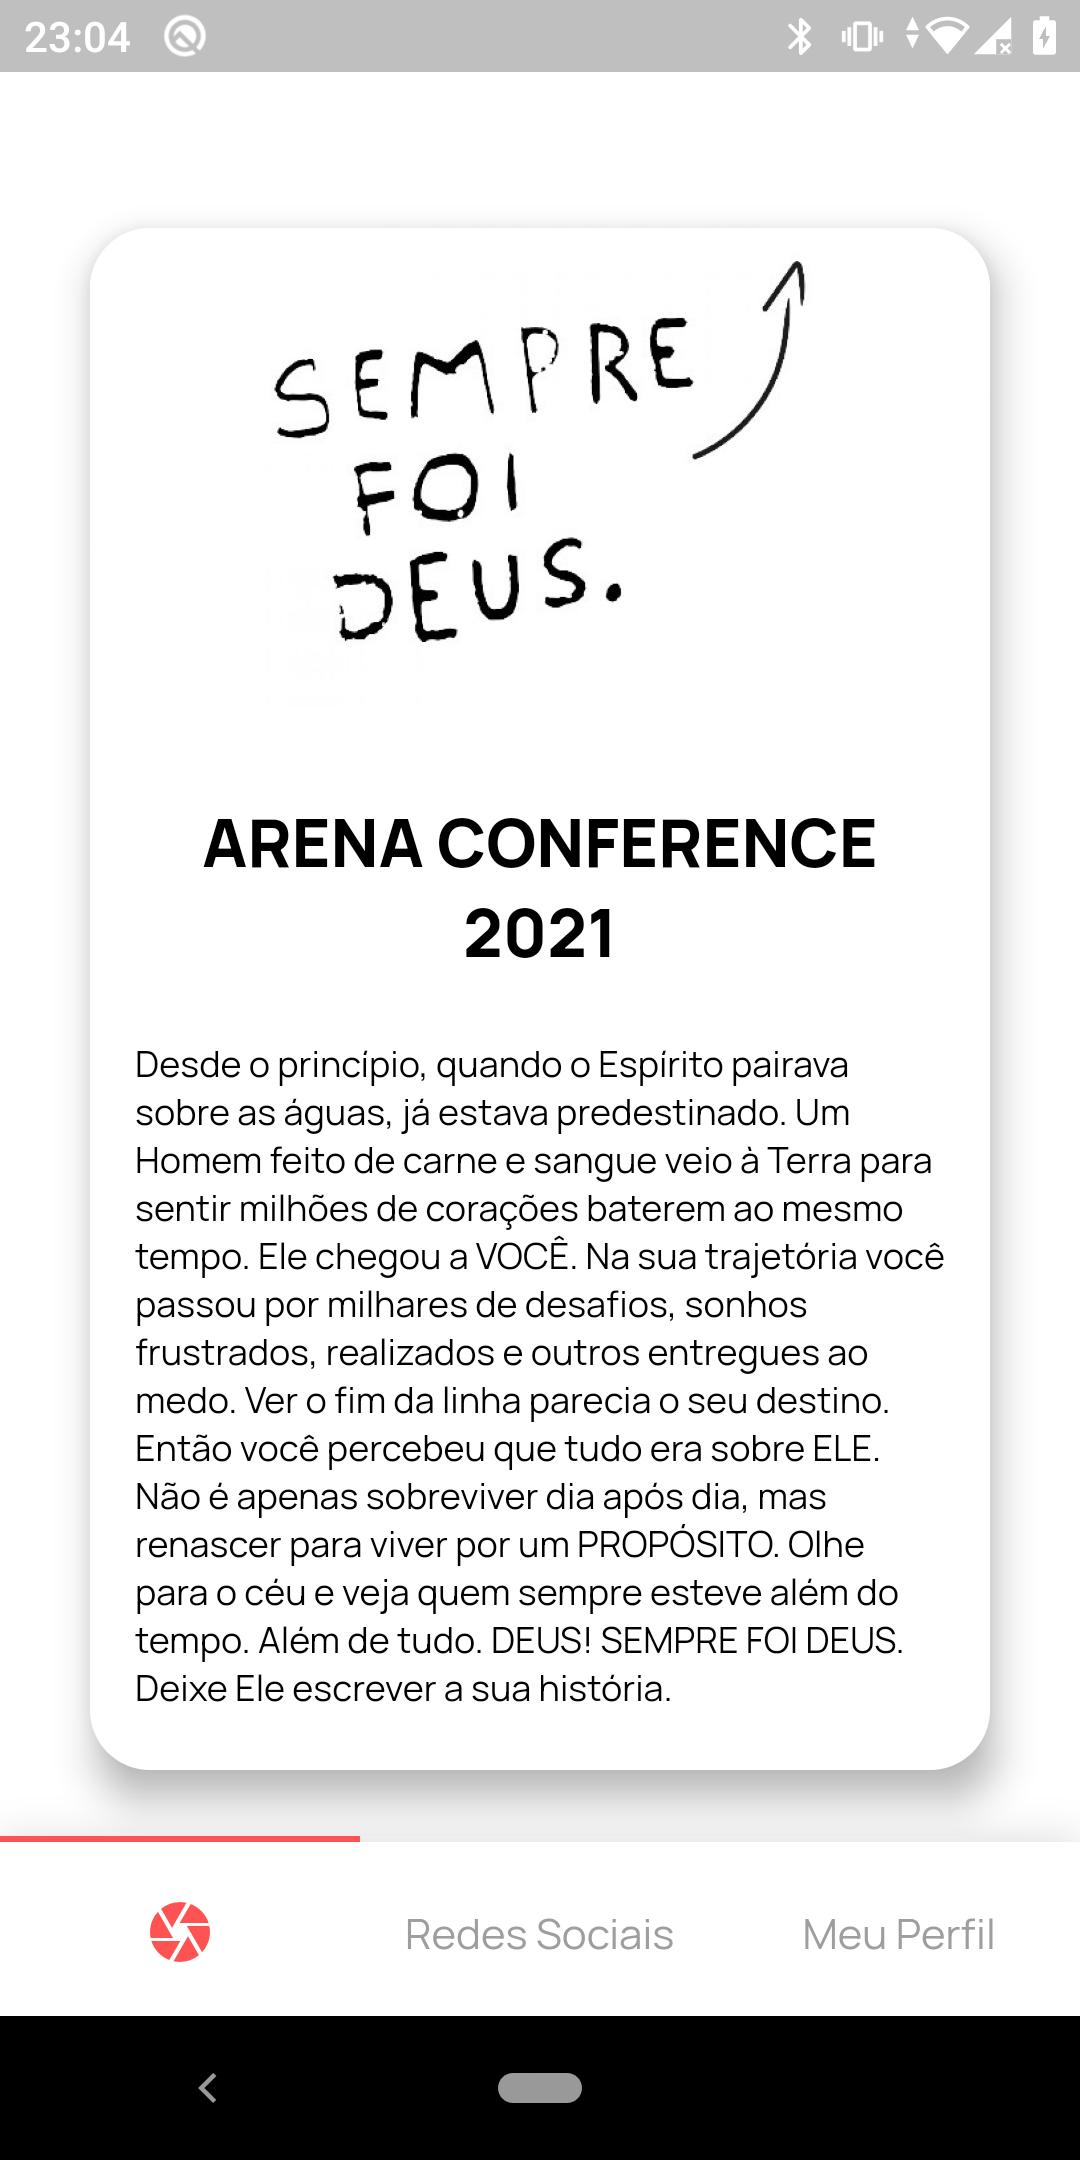 Arena Conference 1.1.4 Screenshot 11